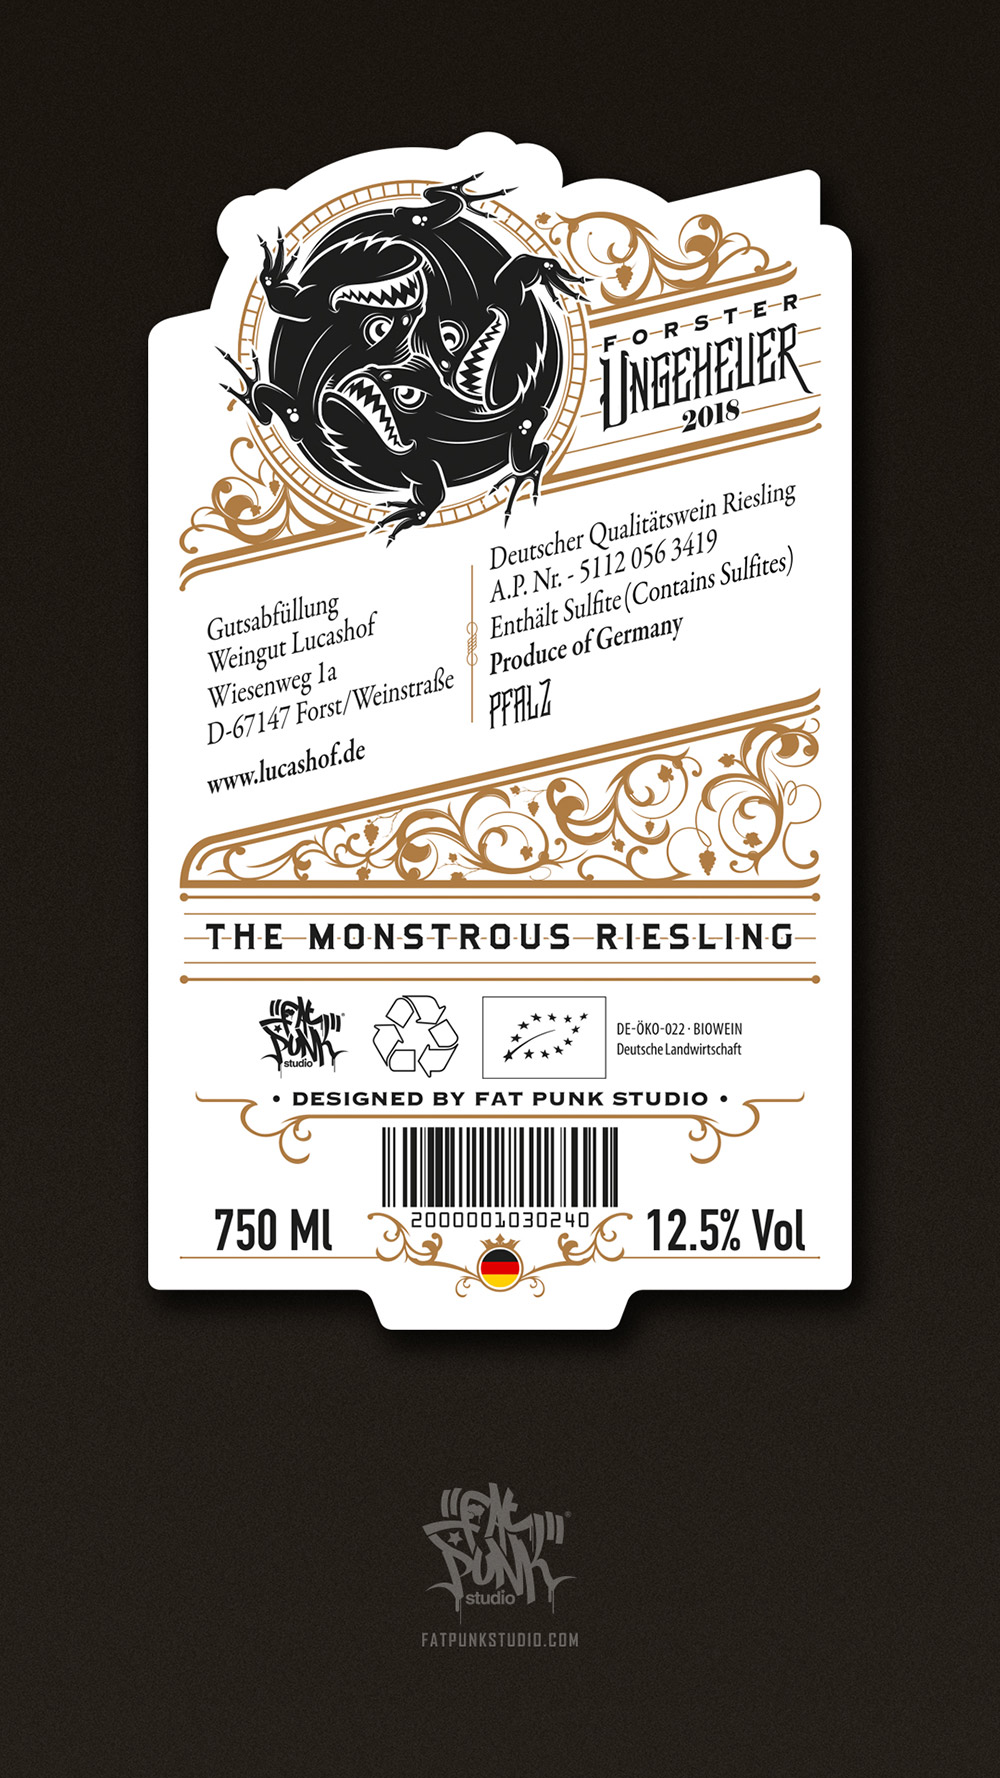 basf-lacashof-forster-ungeheuer-riesling-fat-punk-studio-05